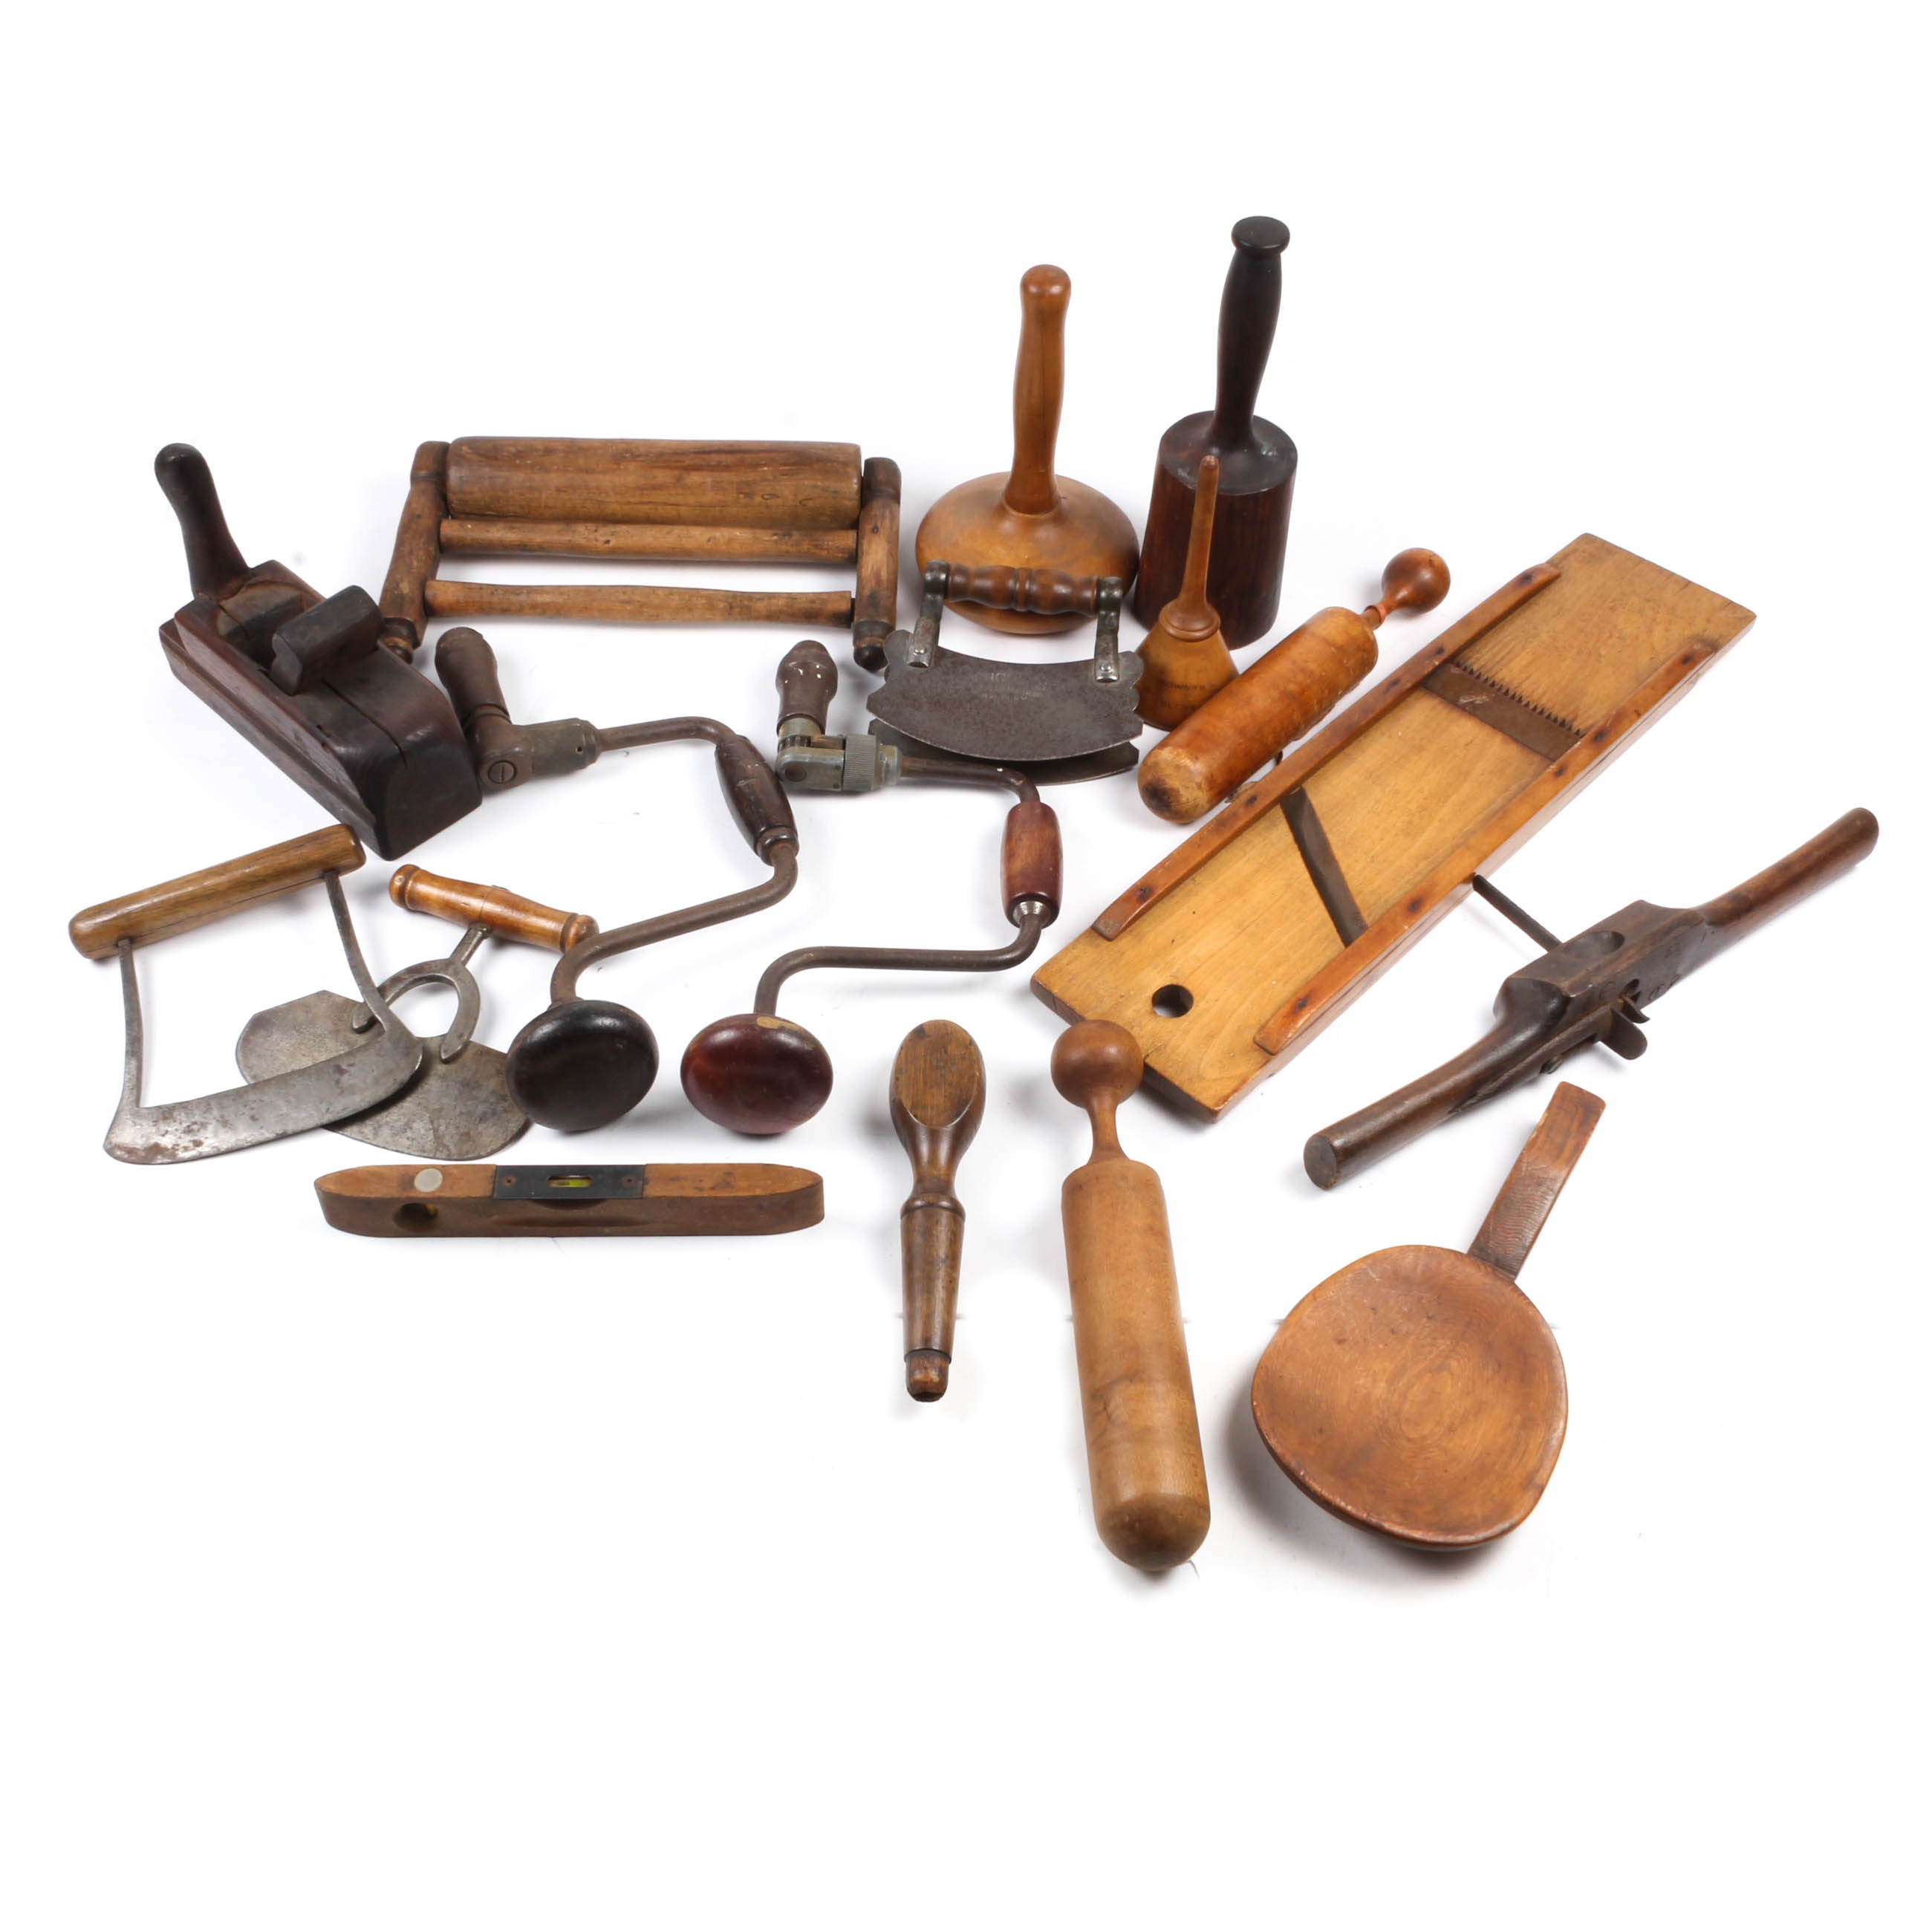 Wood and Metal Household Primitives